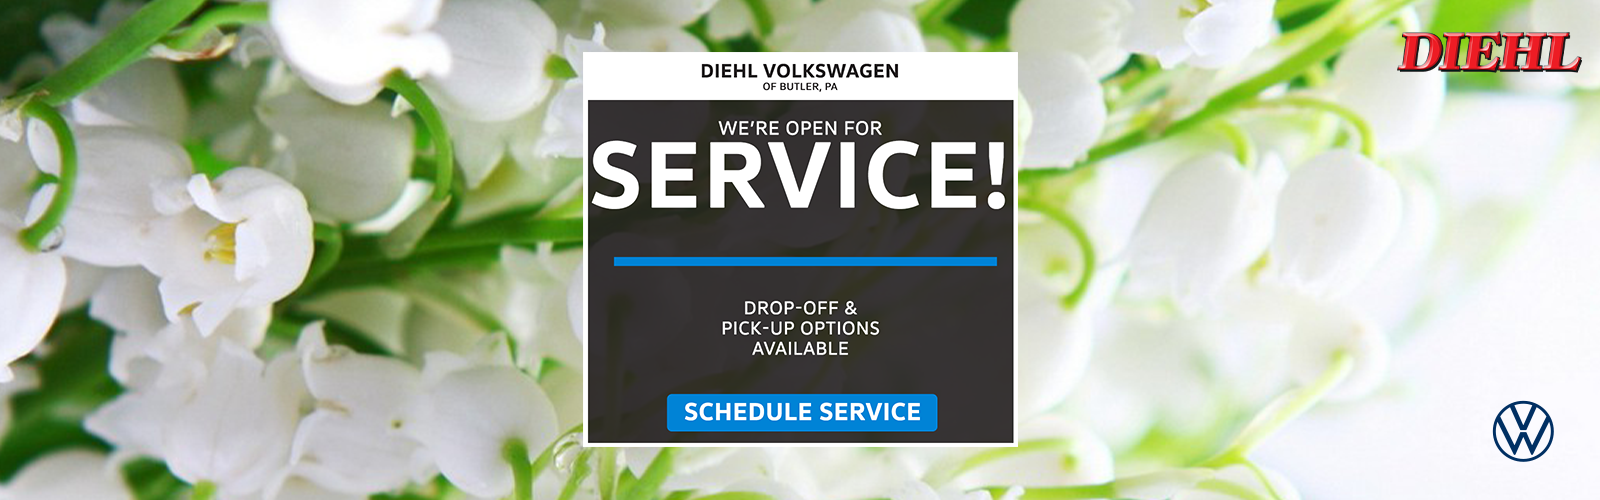 Pennsylvania volkswagen dealership butler pa diehl auto diehl Volkswagen butler retail special Volkswagen promise finance deal new vehicle special coronavirus deal COVID-19 special